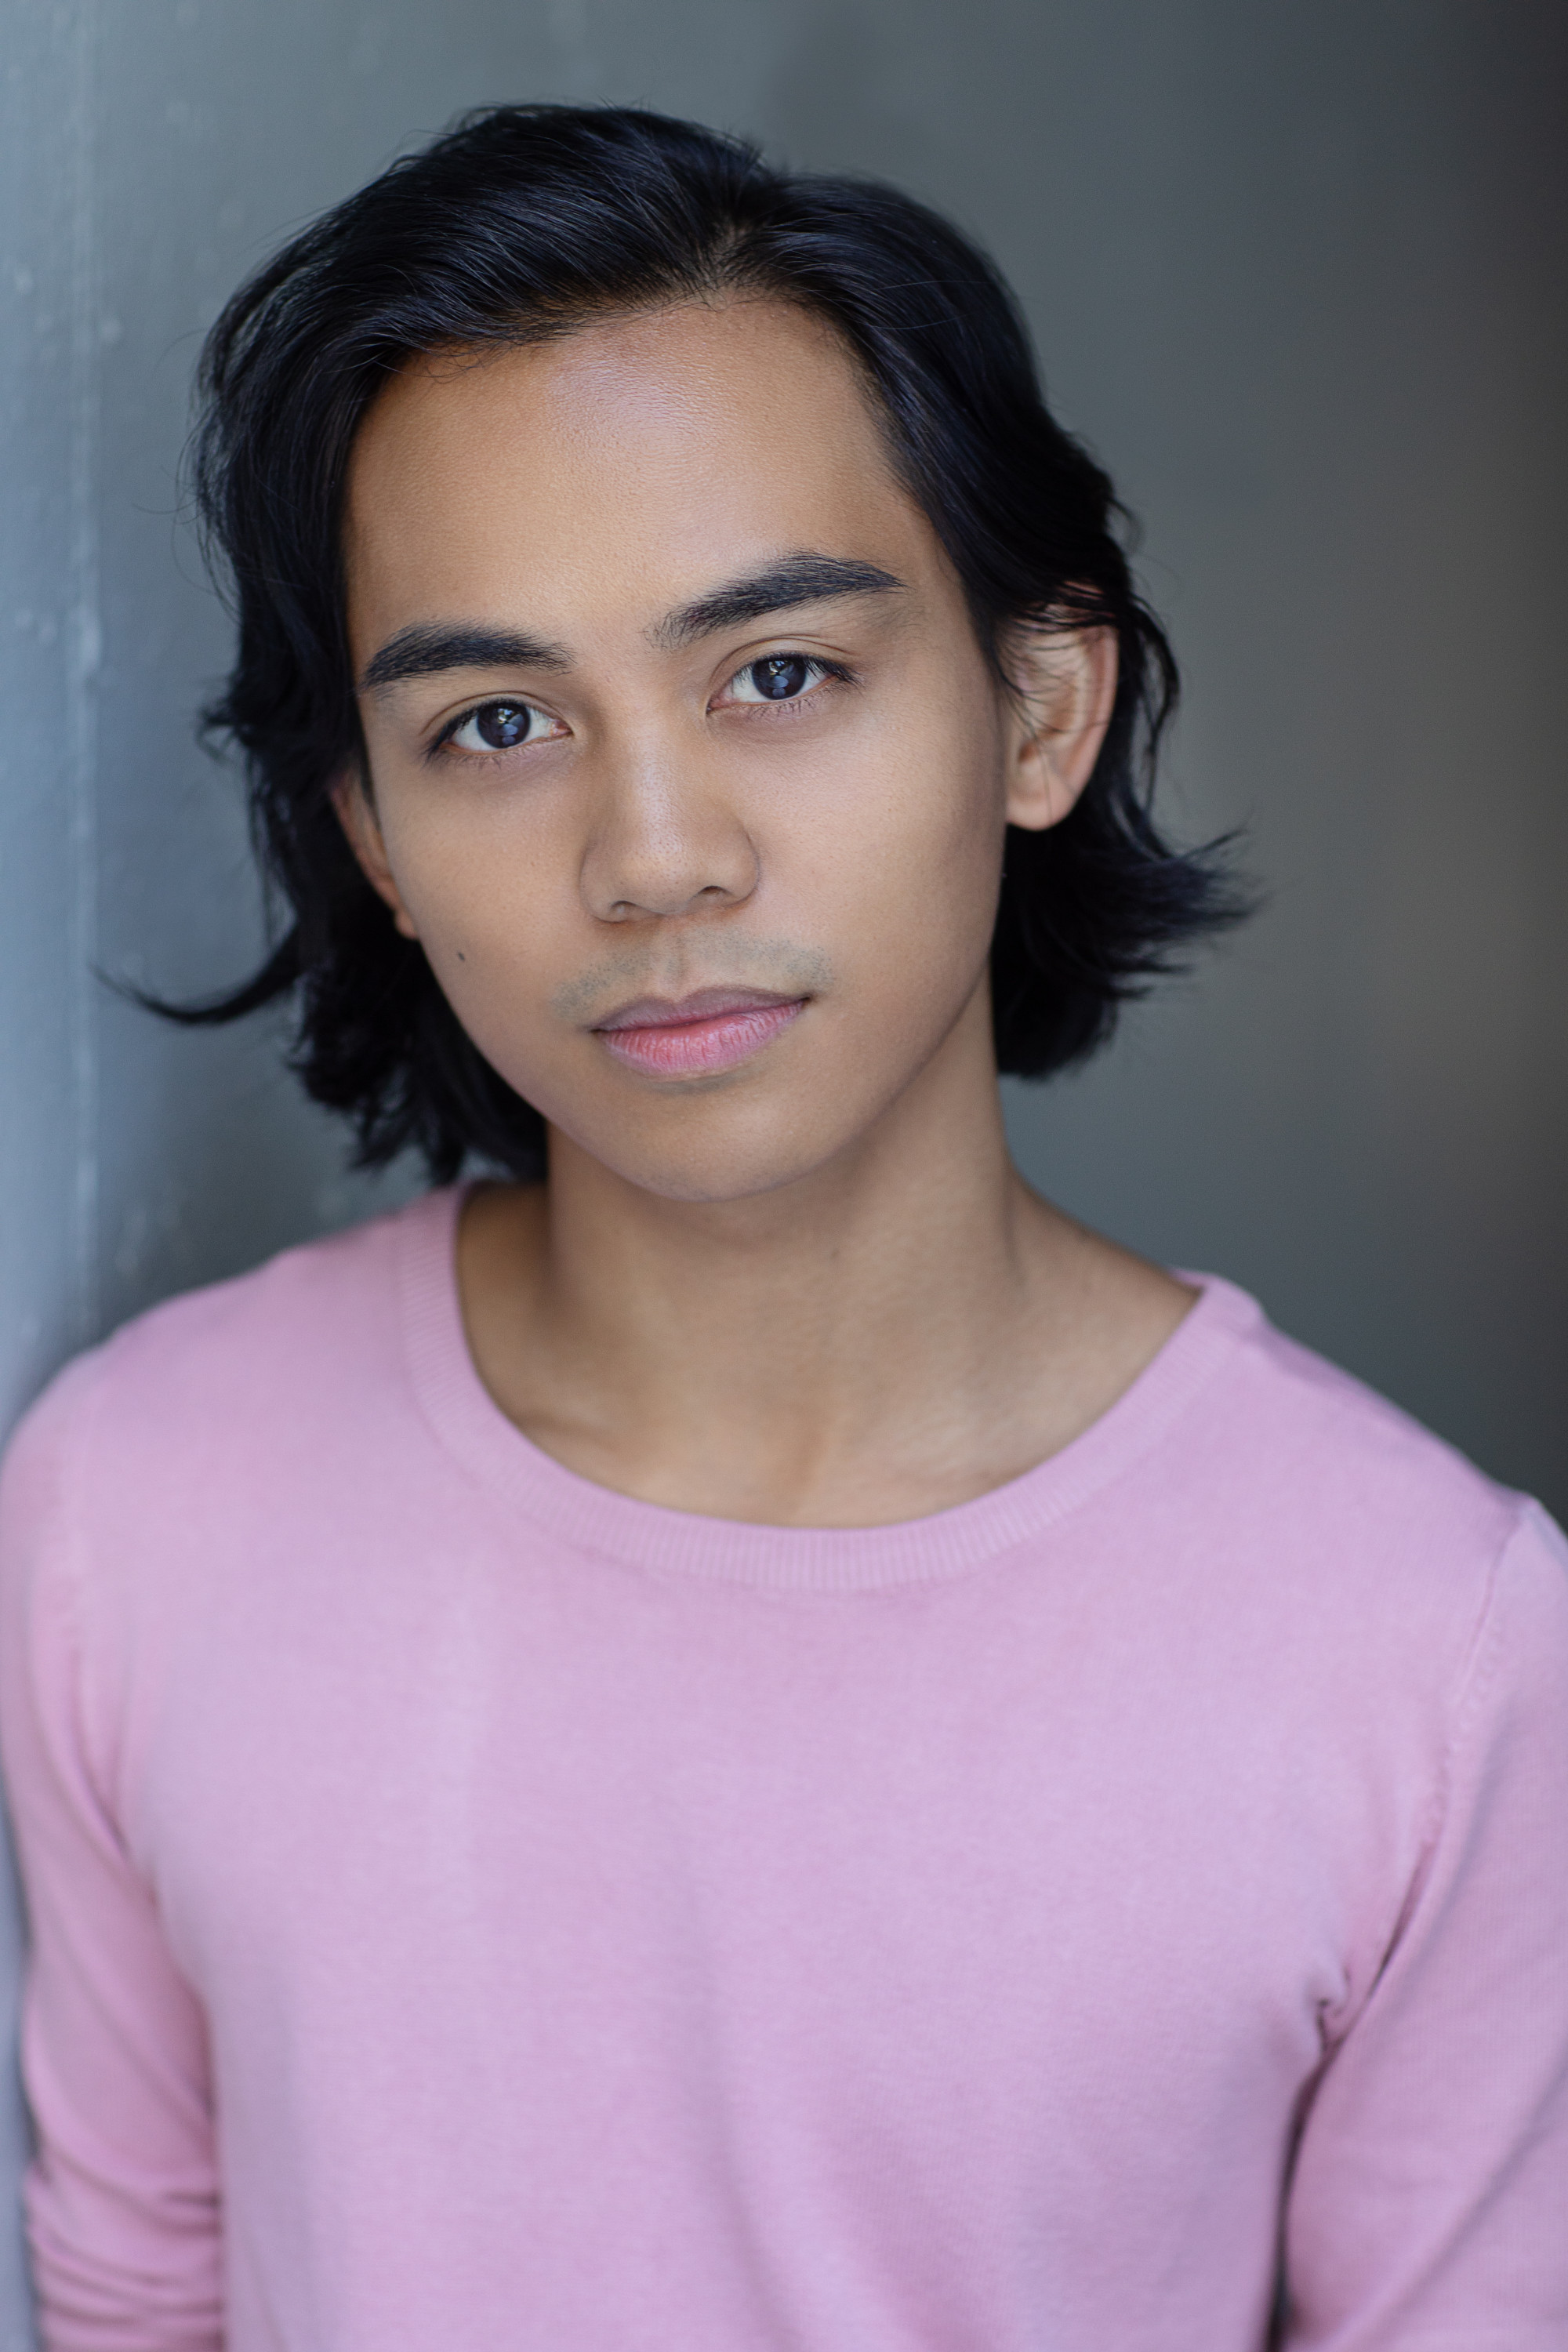 A headshot of actor Marty Alix.